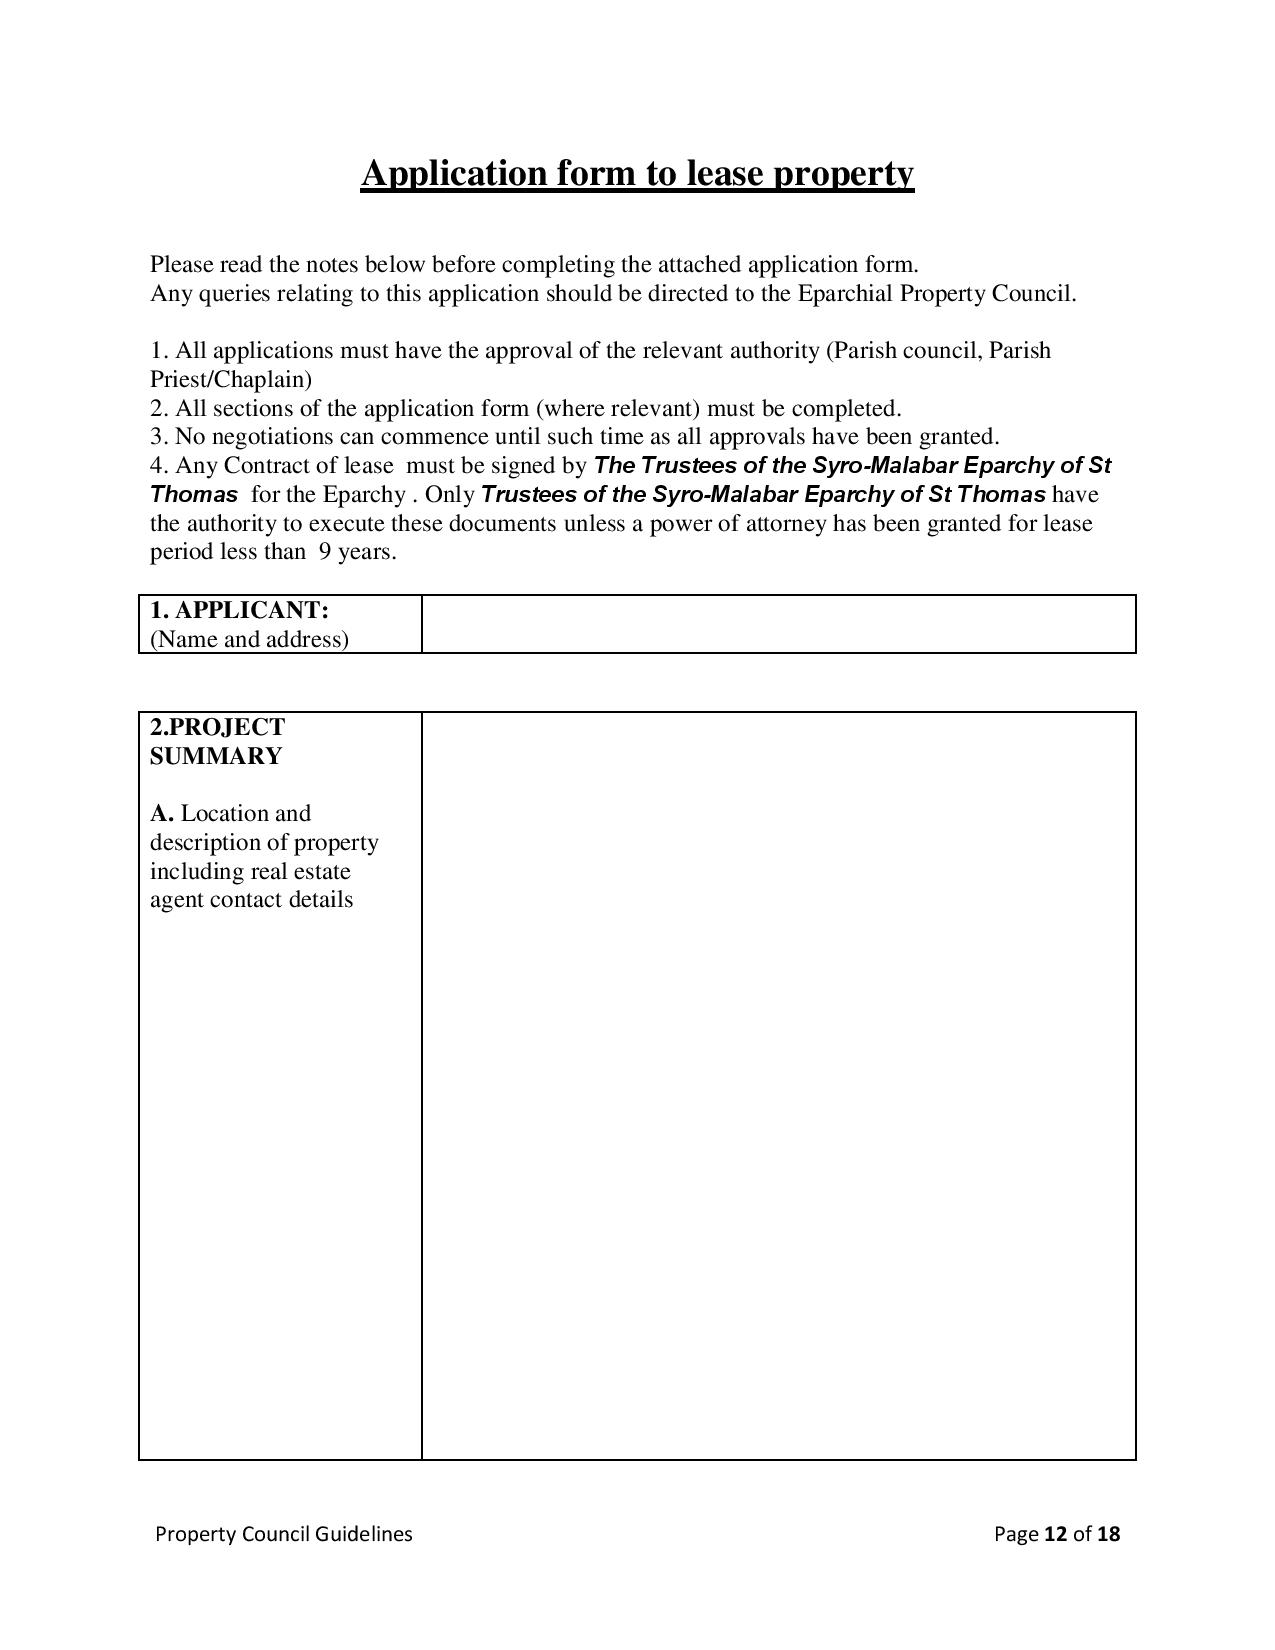 property-council-guidlines-v2-4-page-012